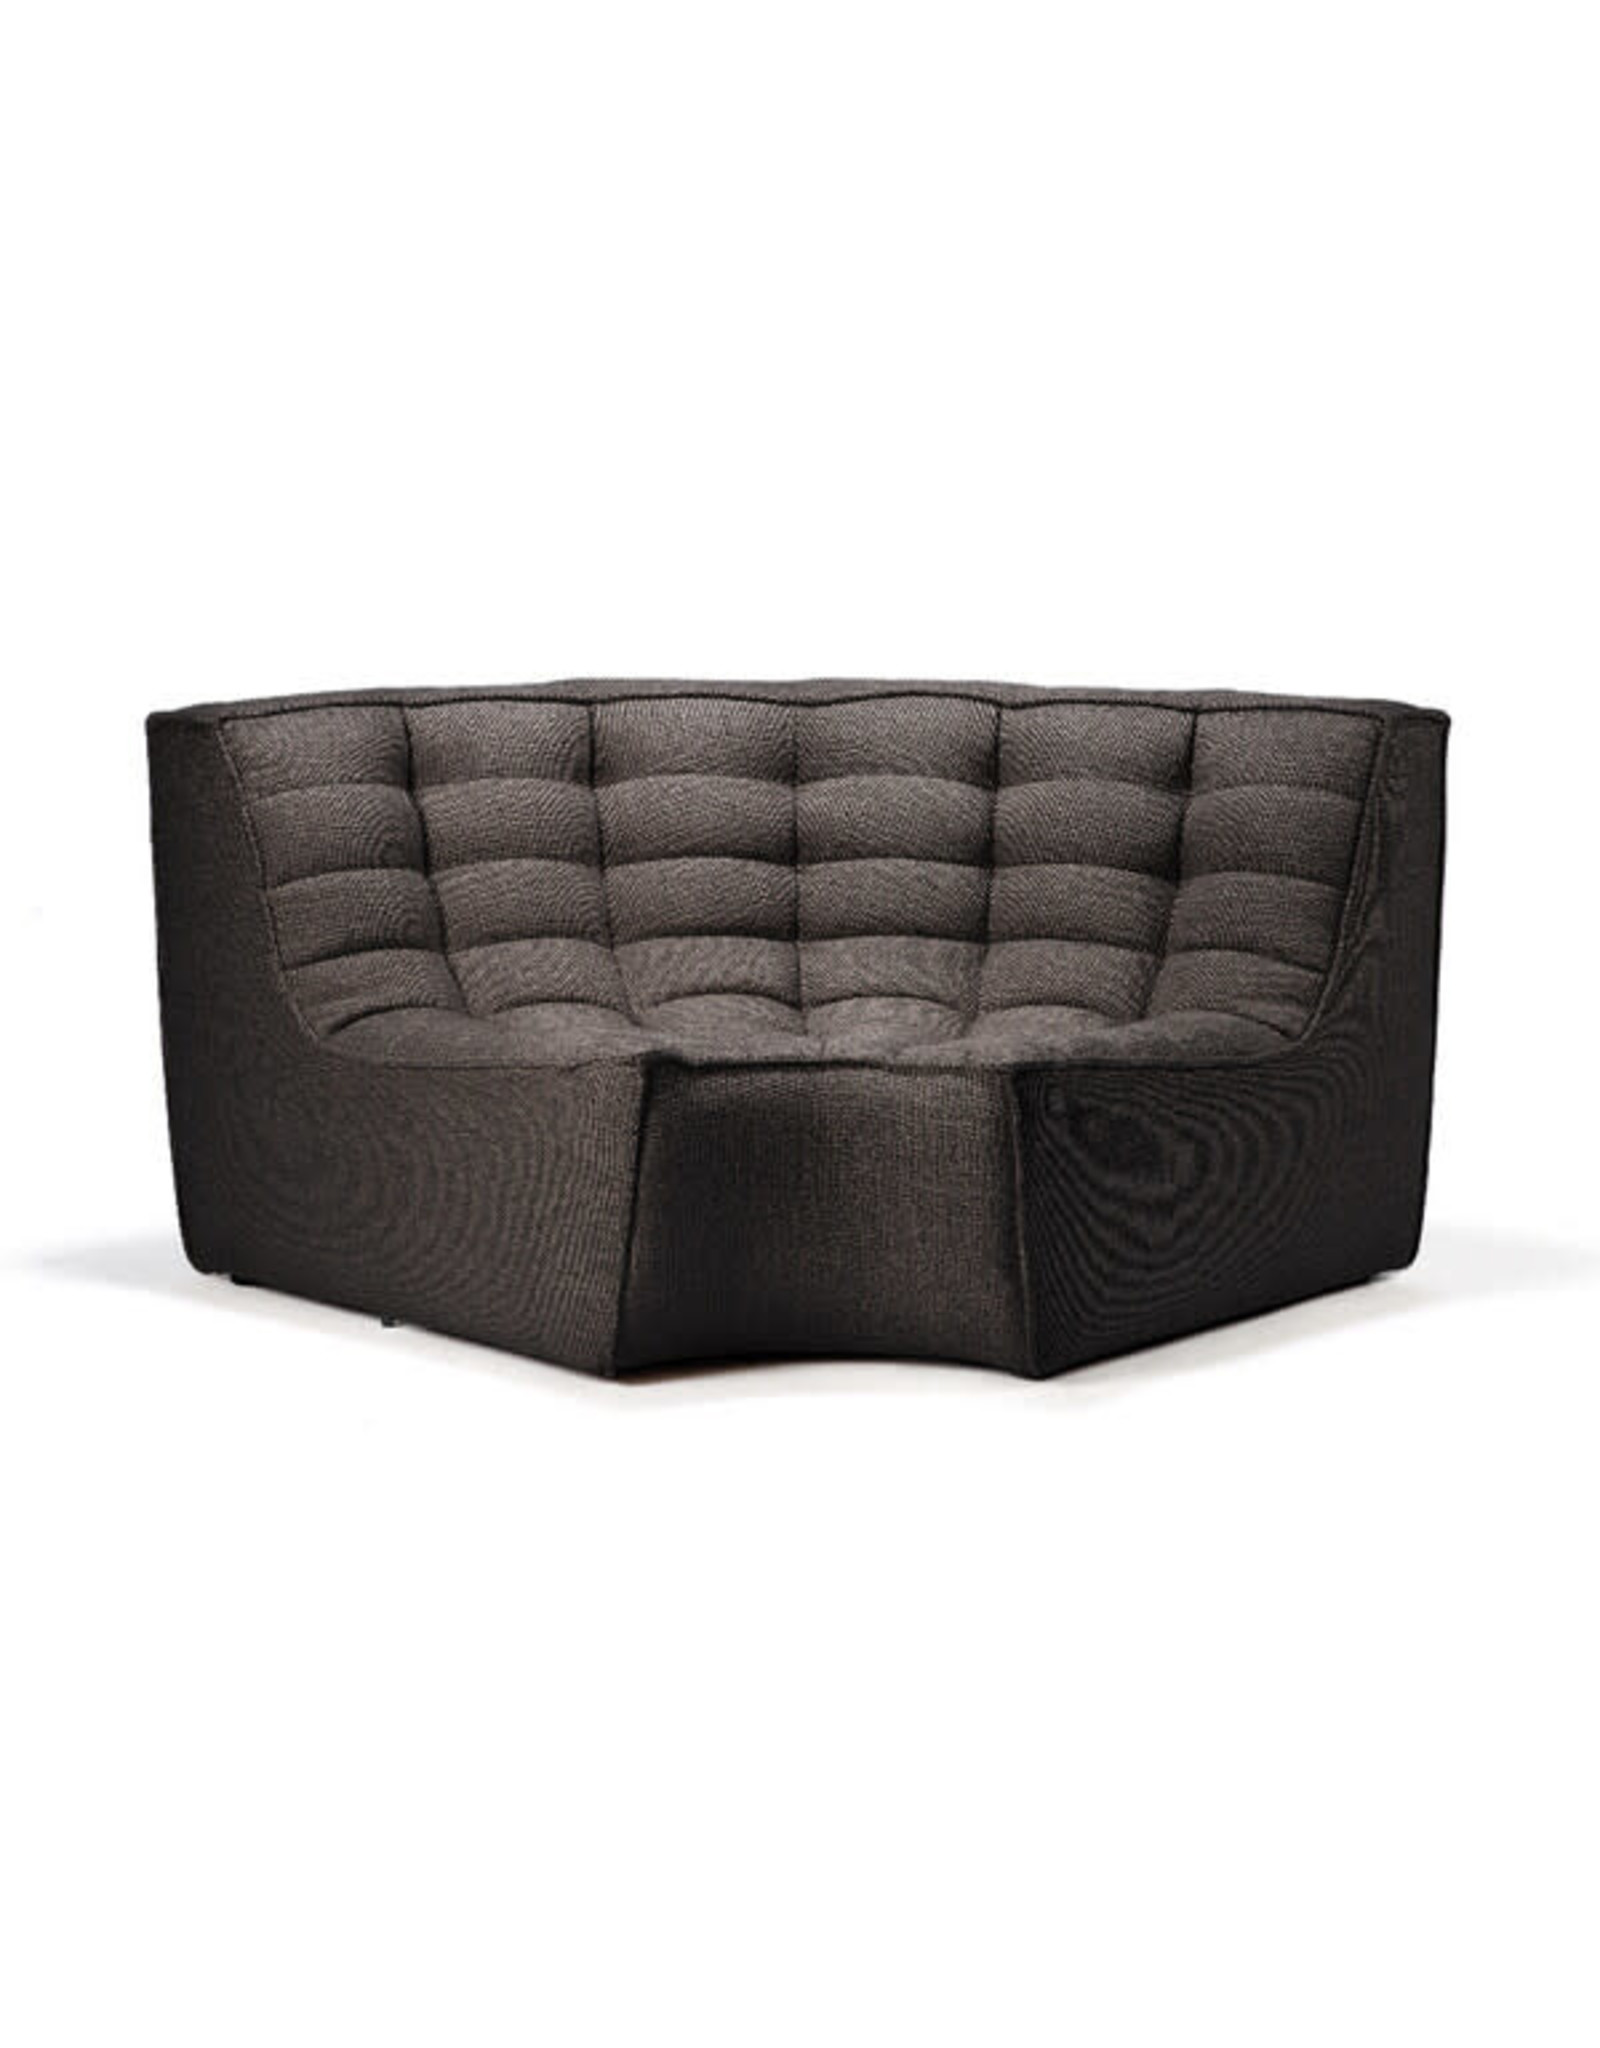 Ethnicraft N701 Sofa Round Corner Dark Grey